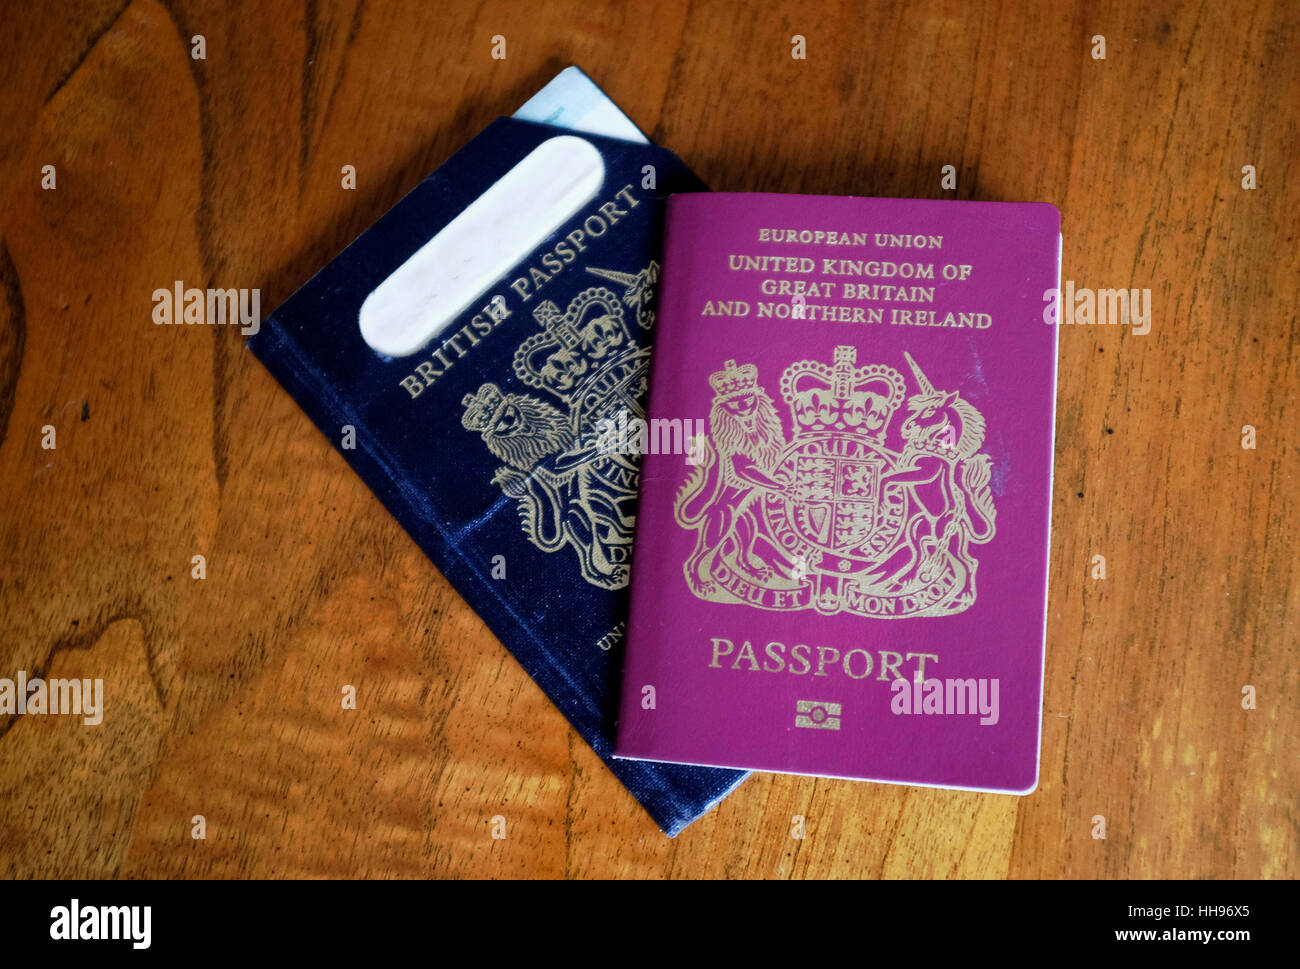 Old Style British Passport With A European Union Passport Stock Image